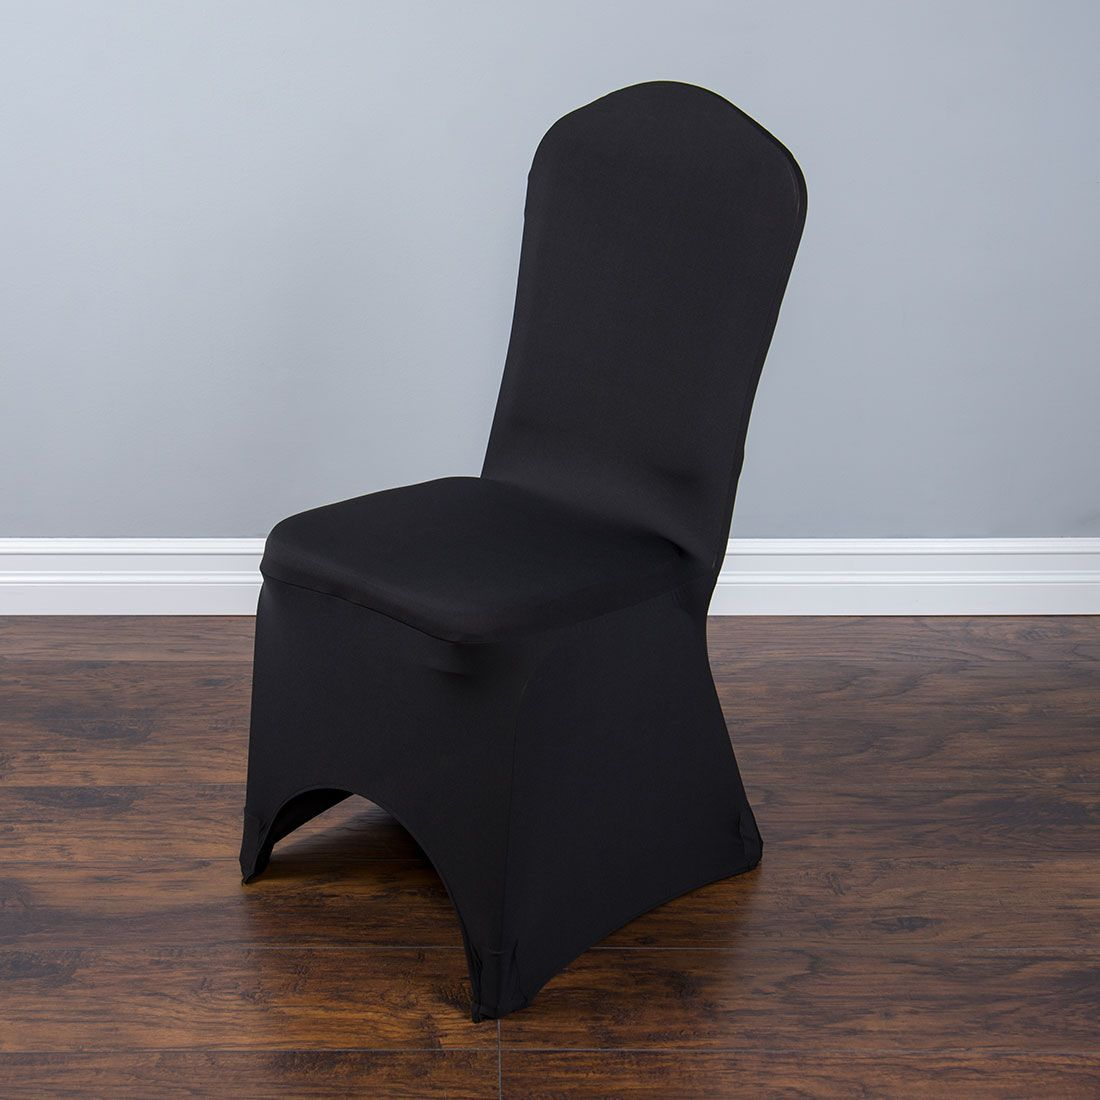 Used Banquet Chairs Stretch Banquet Chair Cover Black In 2019 Event Banquet Design